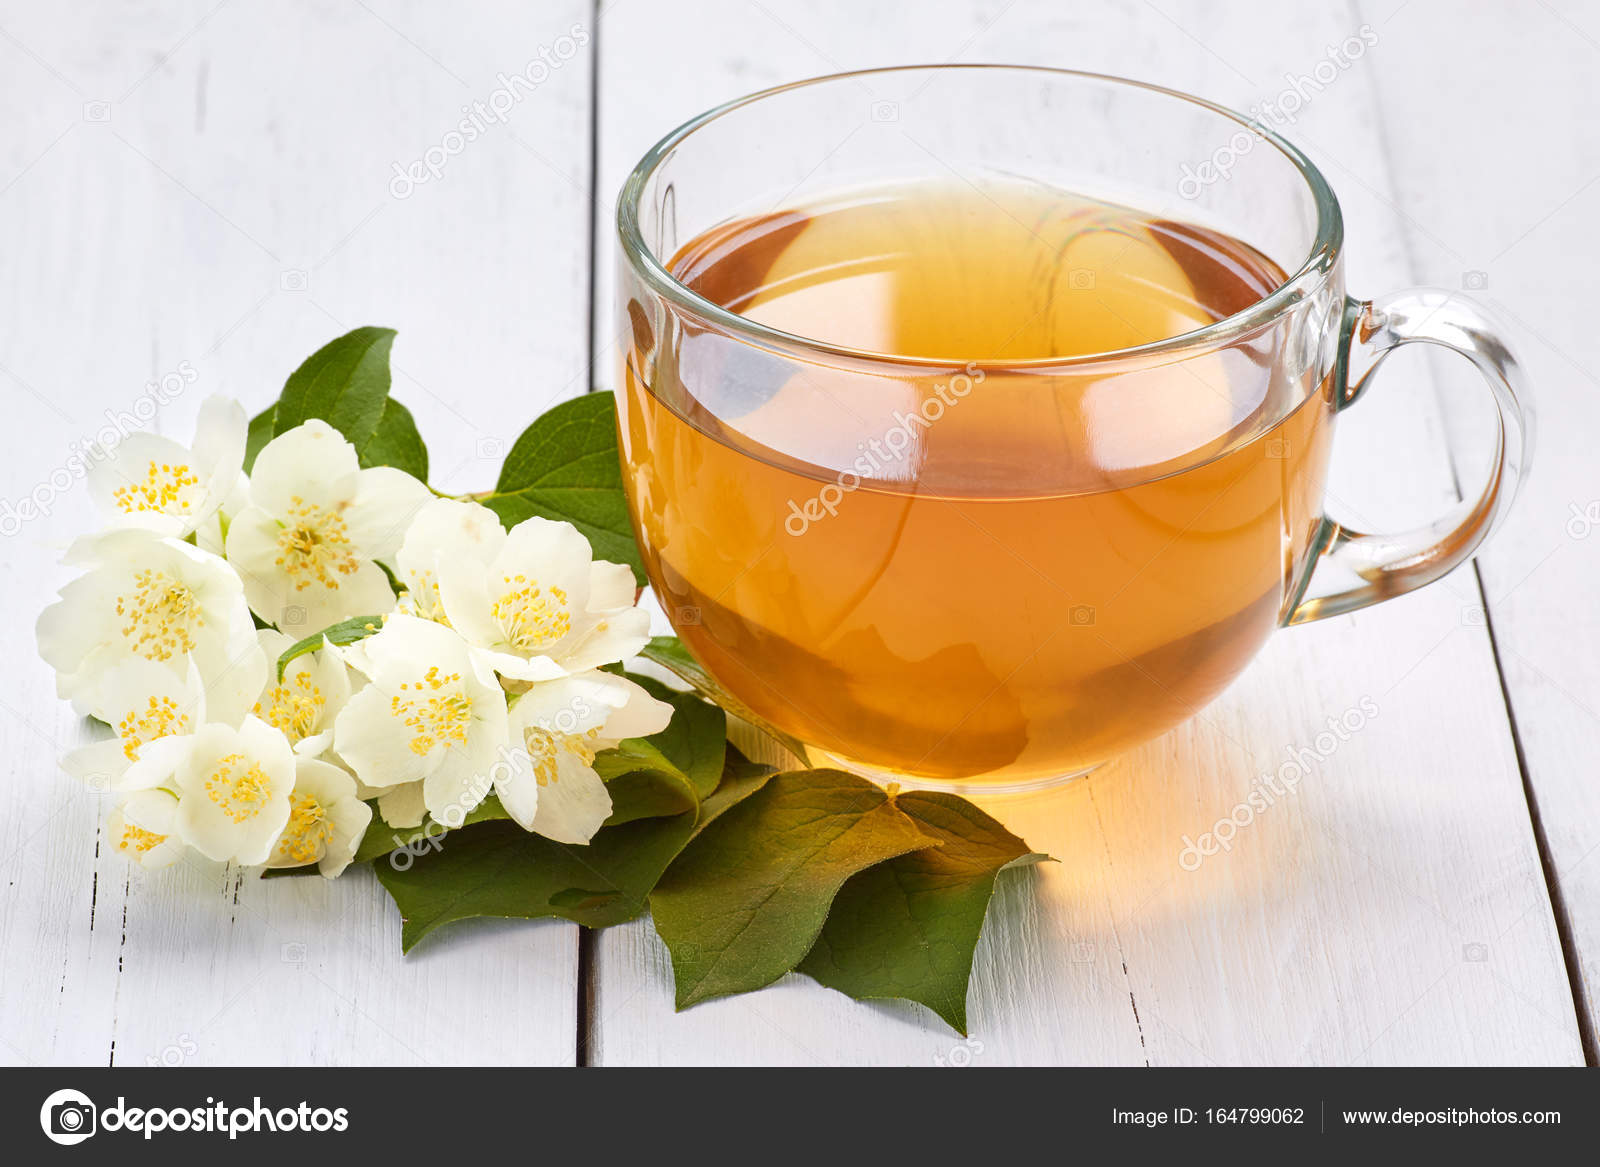 Jasmine Tea And Jasmine Flowers On A White Wooden Table Stock